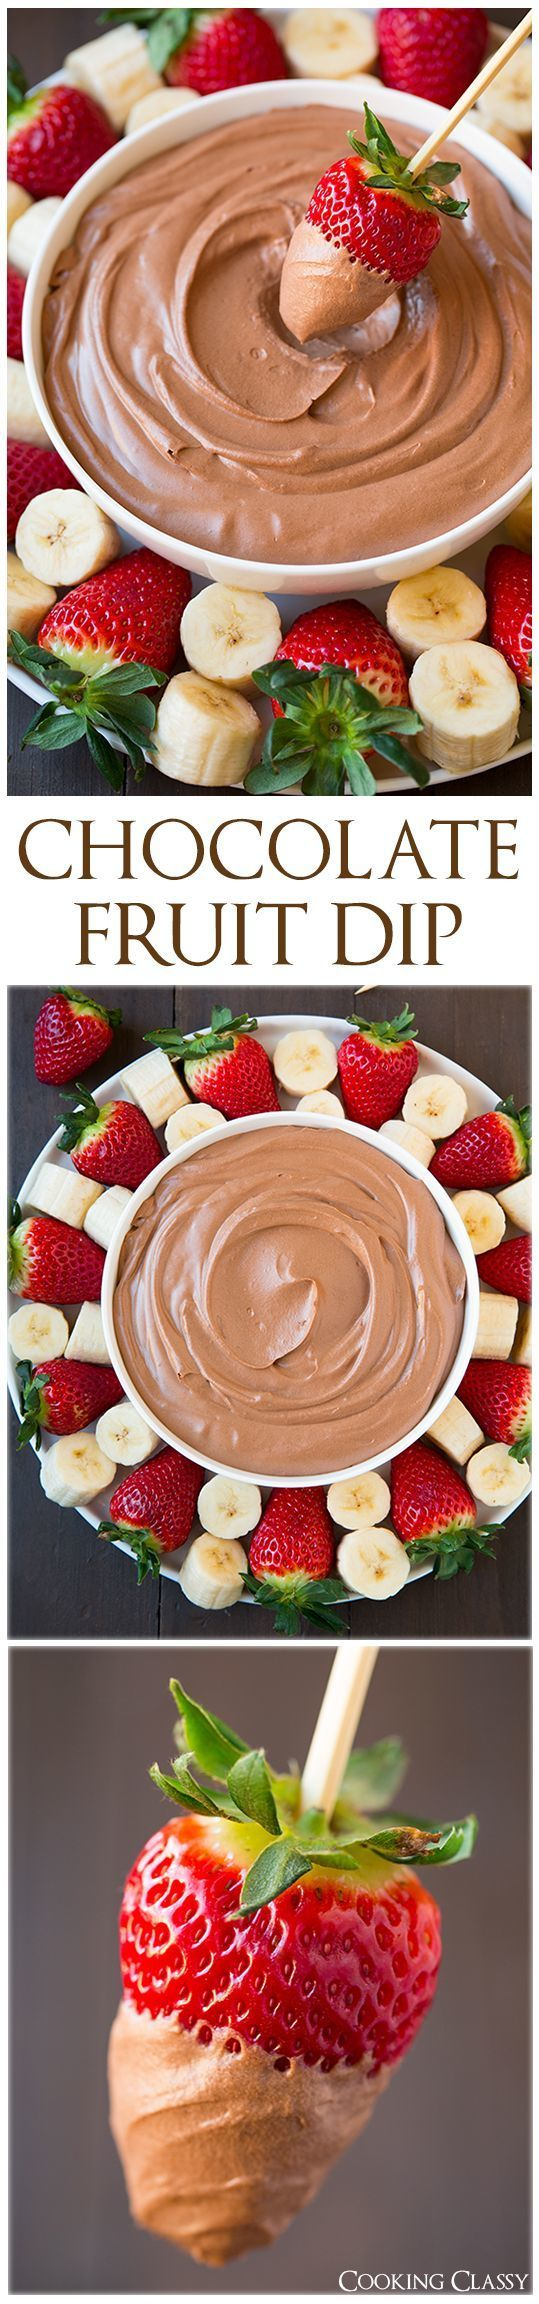 Chocolate fruit dip - great appetizer/dessert